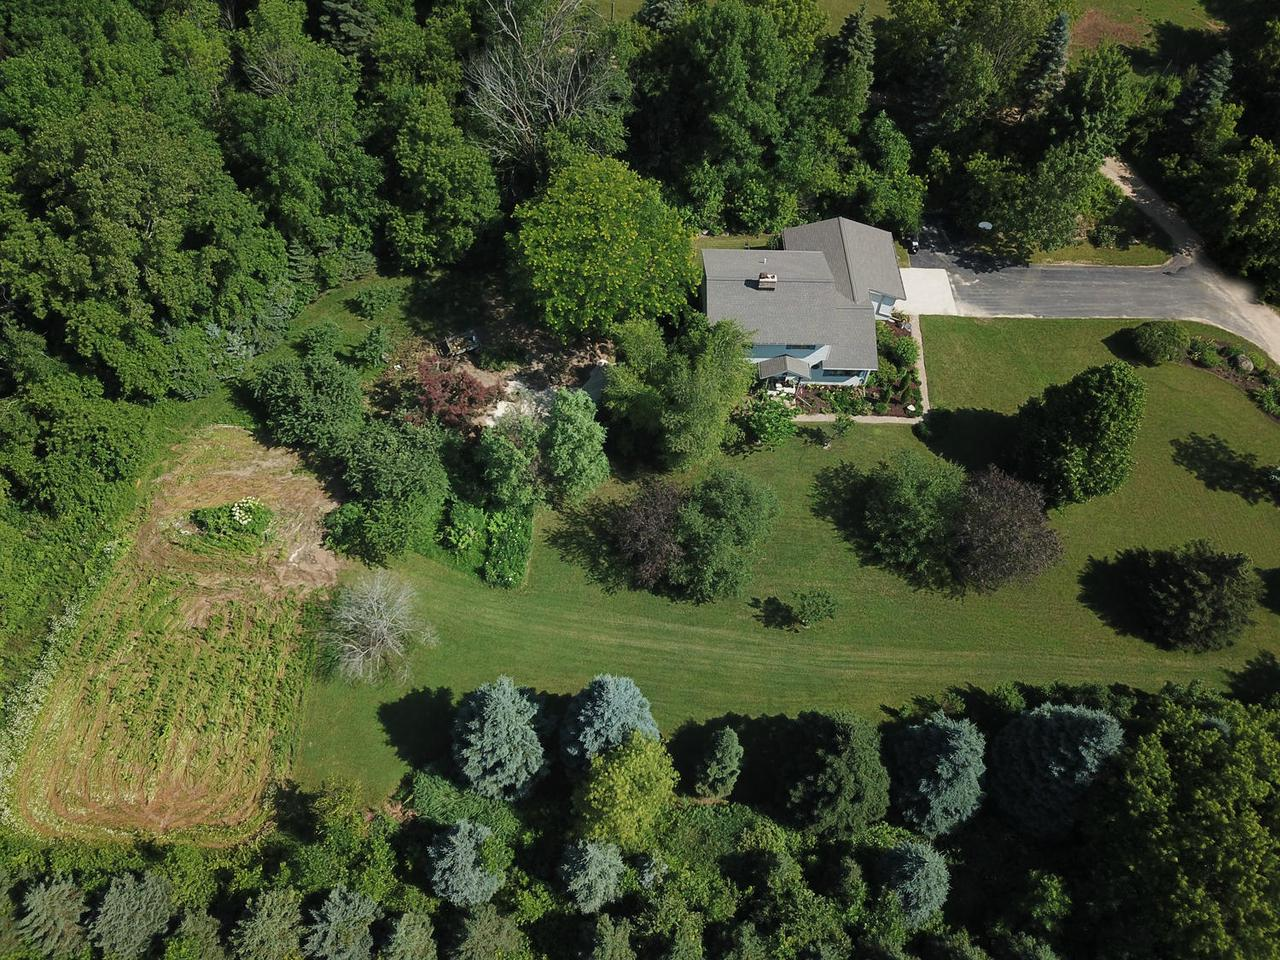 Have you been looking for a house with acreage? This 3 BR 1.5 BA, 2 car garage home comes with 16 acres...6 are wooded, 6 are Pasture/ag. and the other 4 acres are where the home and outbuildings are located. This hard to find property has 2 spring fed ponds, acres of woods to hunt in and is fully fenced in for grazing for horses and cows. 2 huge, heated garage /outbuildings (1 is 40x80), tons of fruit trees and beautiful flowering shrubs and perennials surround the property. Centrally located 20 minutes to Sheboygan or Manitowoc and 1/2 mile from Wilke Lake. If you're interested in a peaceful, private setting...this could be it!